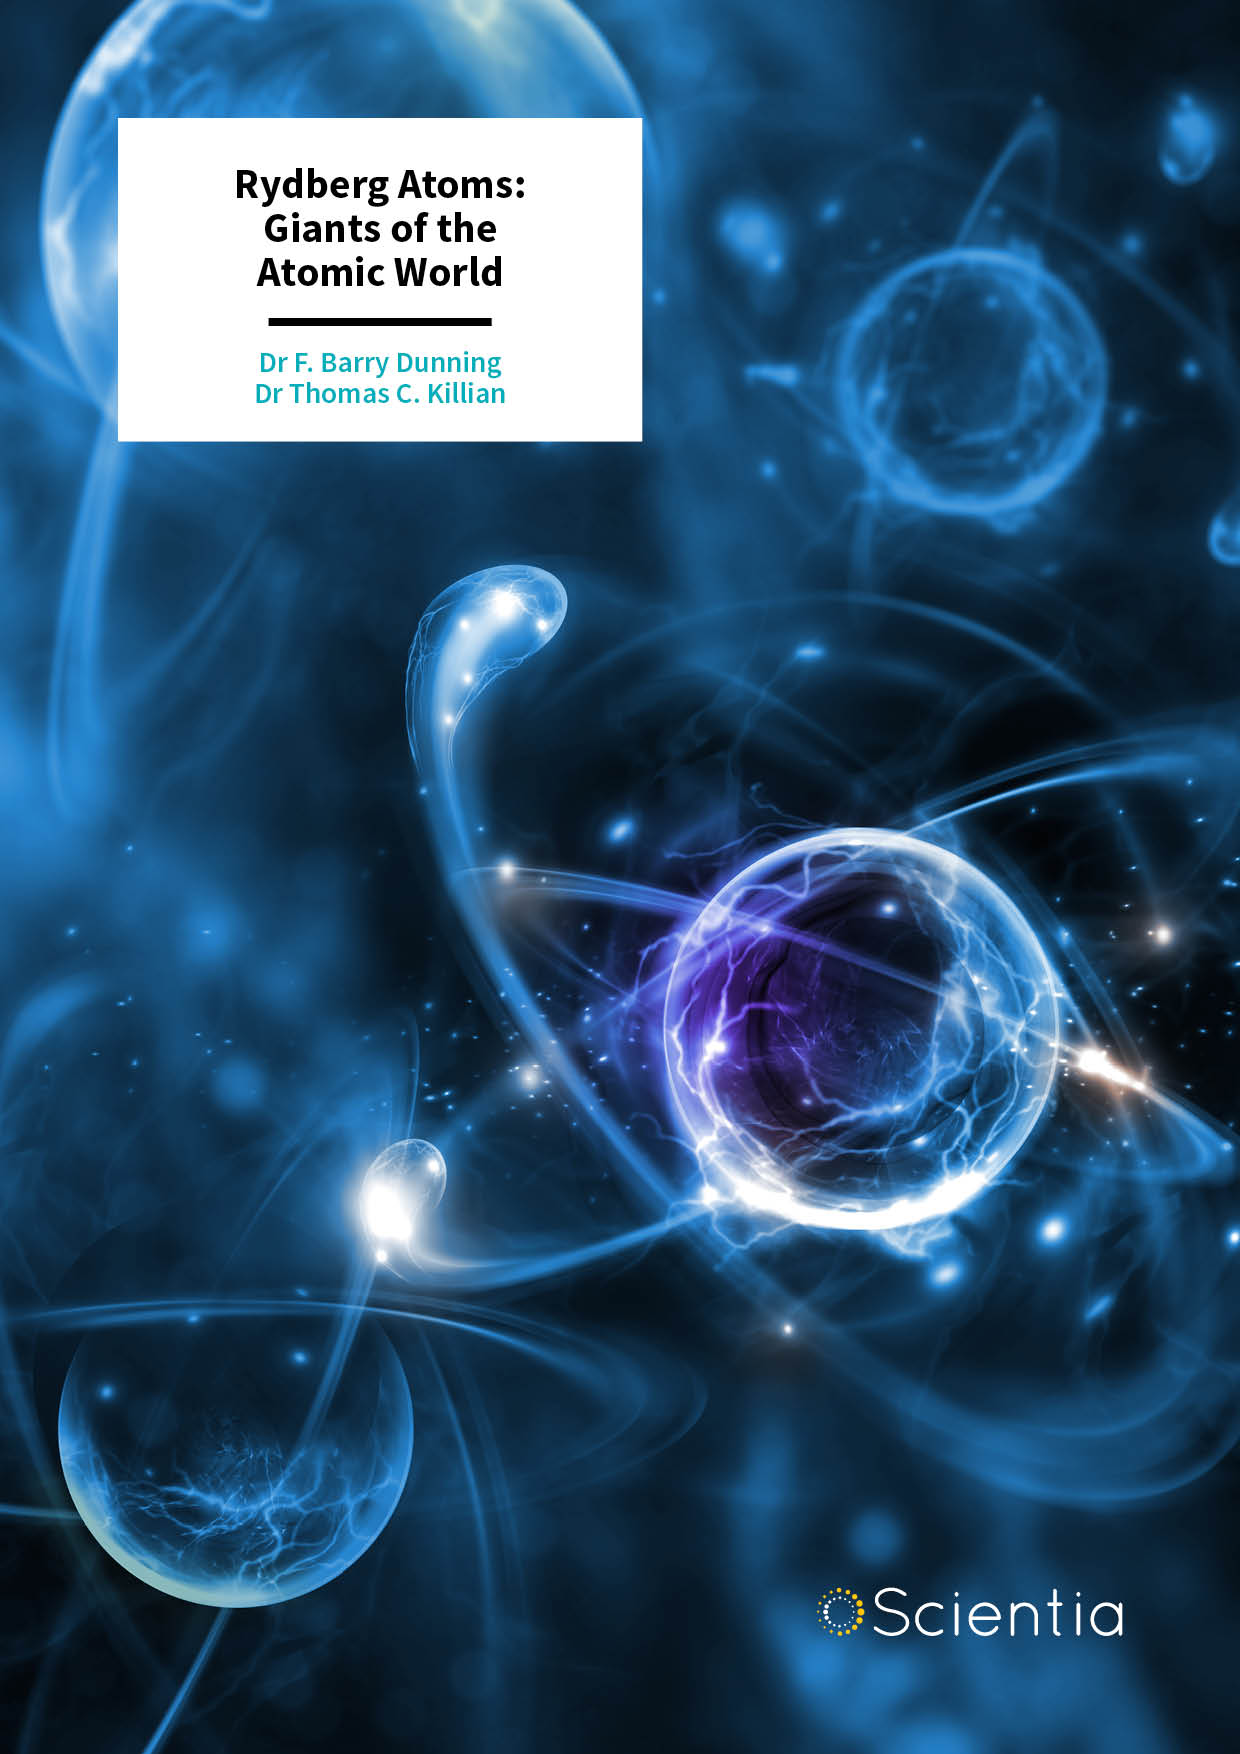 Rydberg Atoms: Giants of the Atomic World